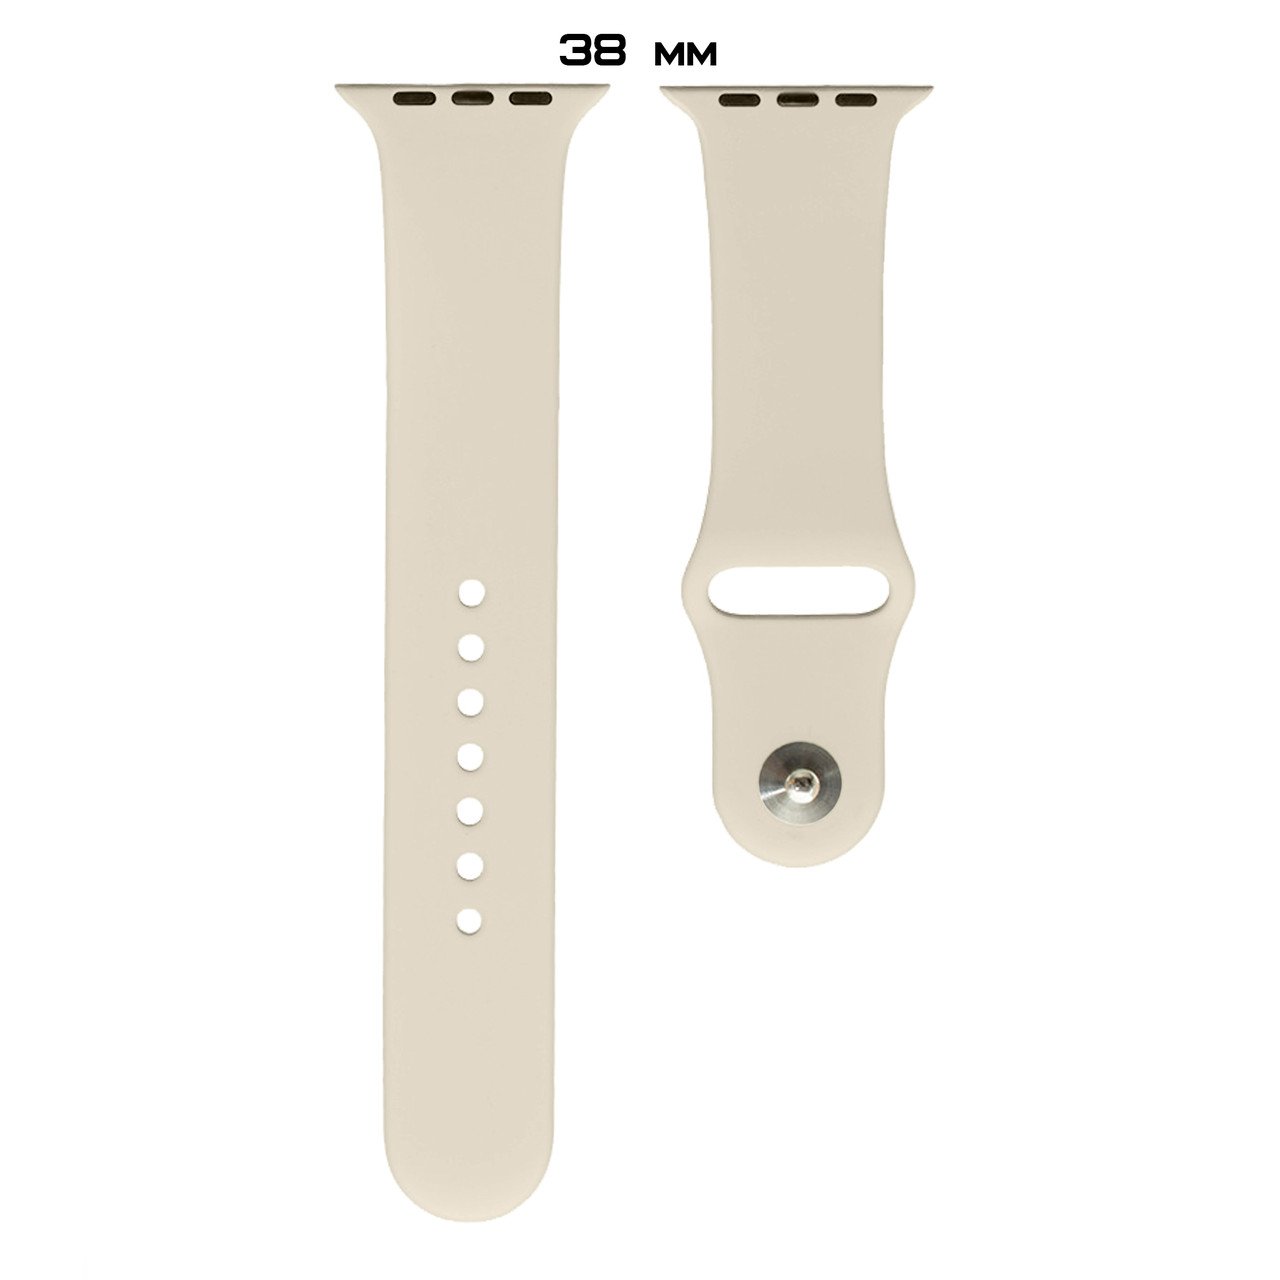 Ремешок Apple Watch Silicone 38/40mm (11) Antique white